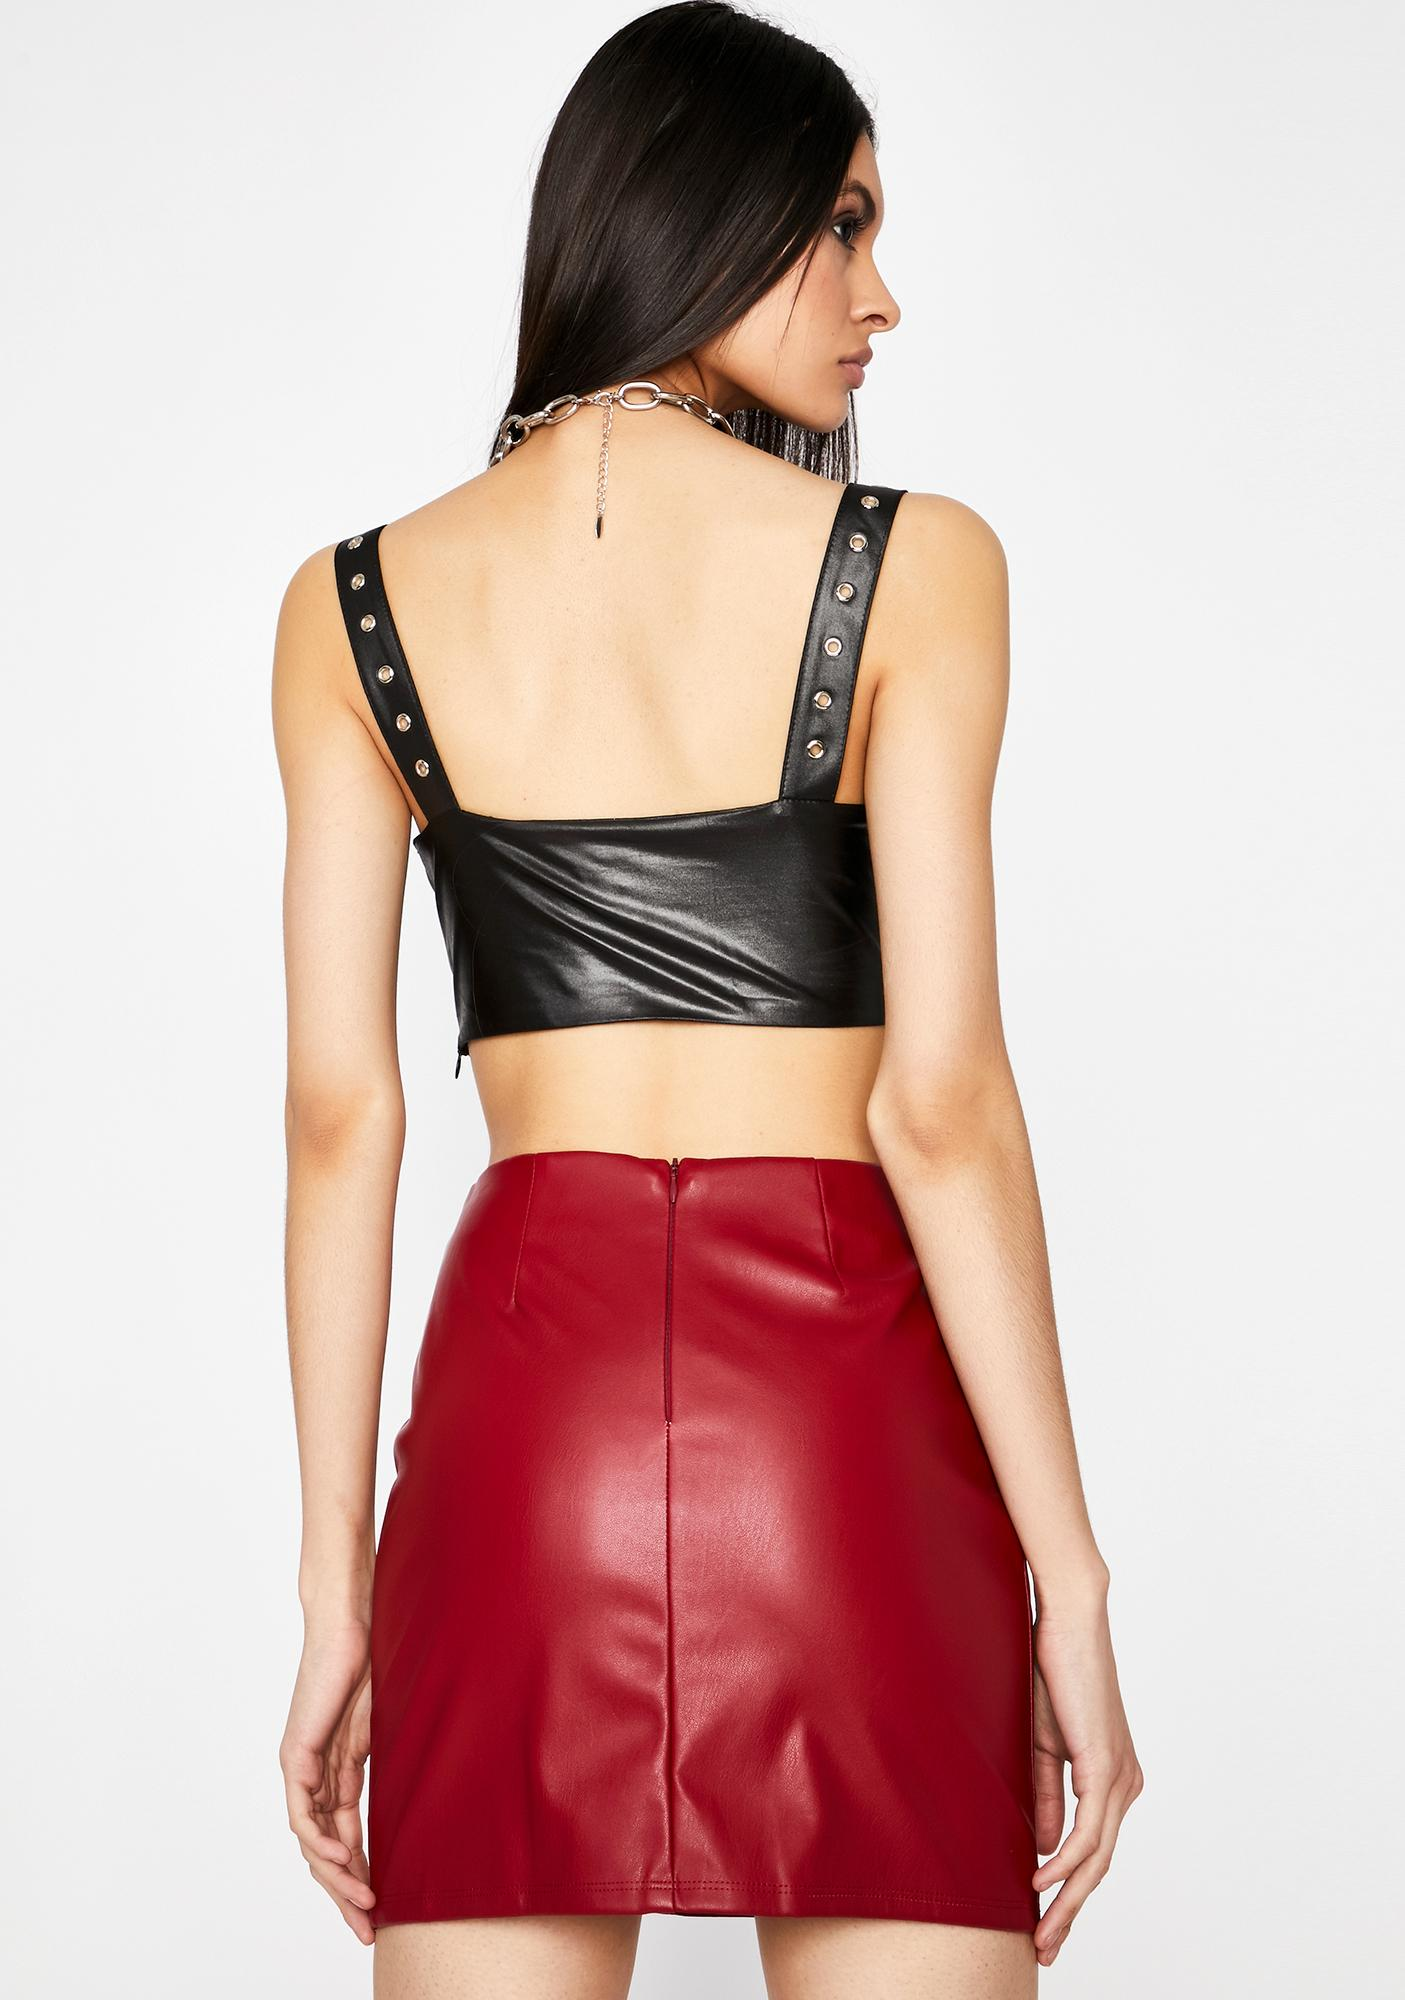 Hot Lost Angel Vegan Leather Skirt